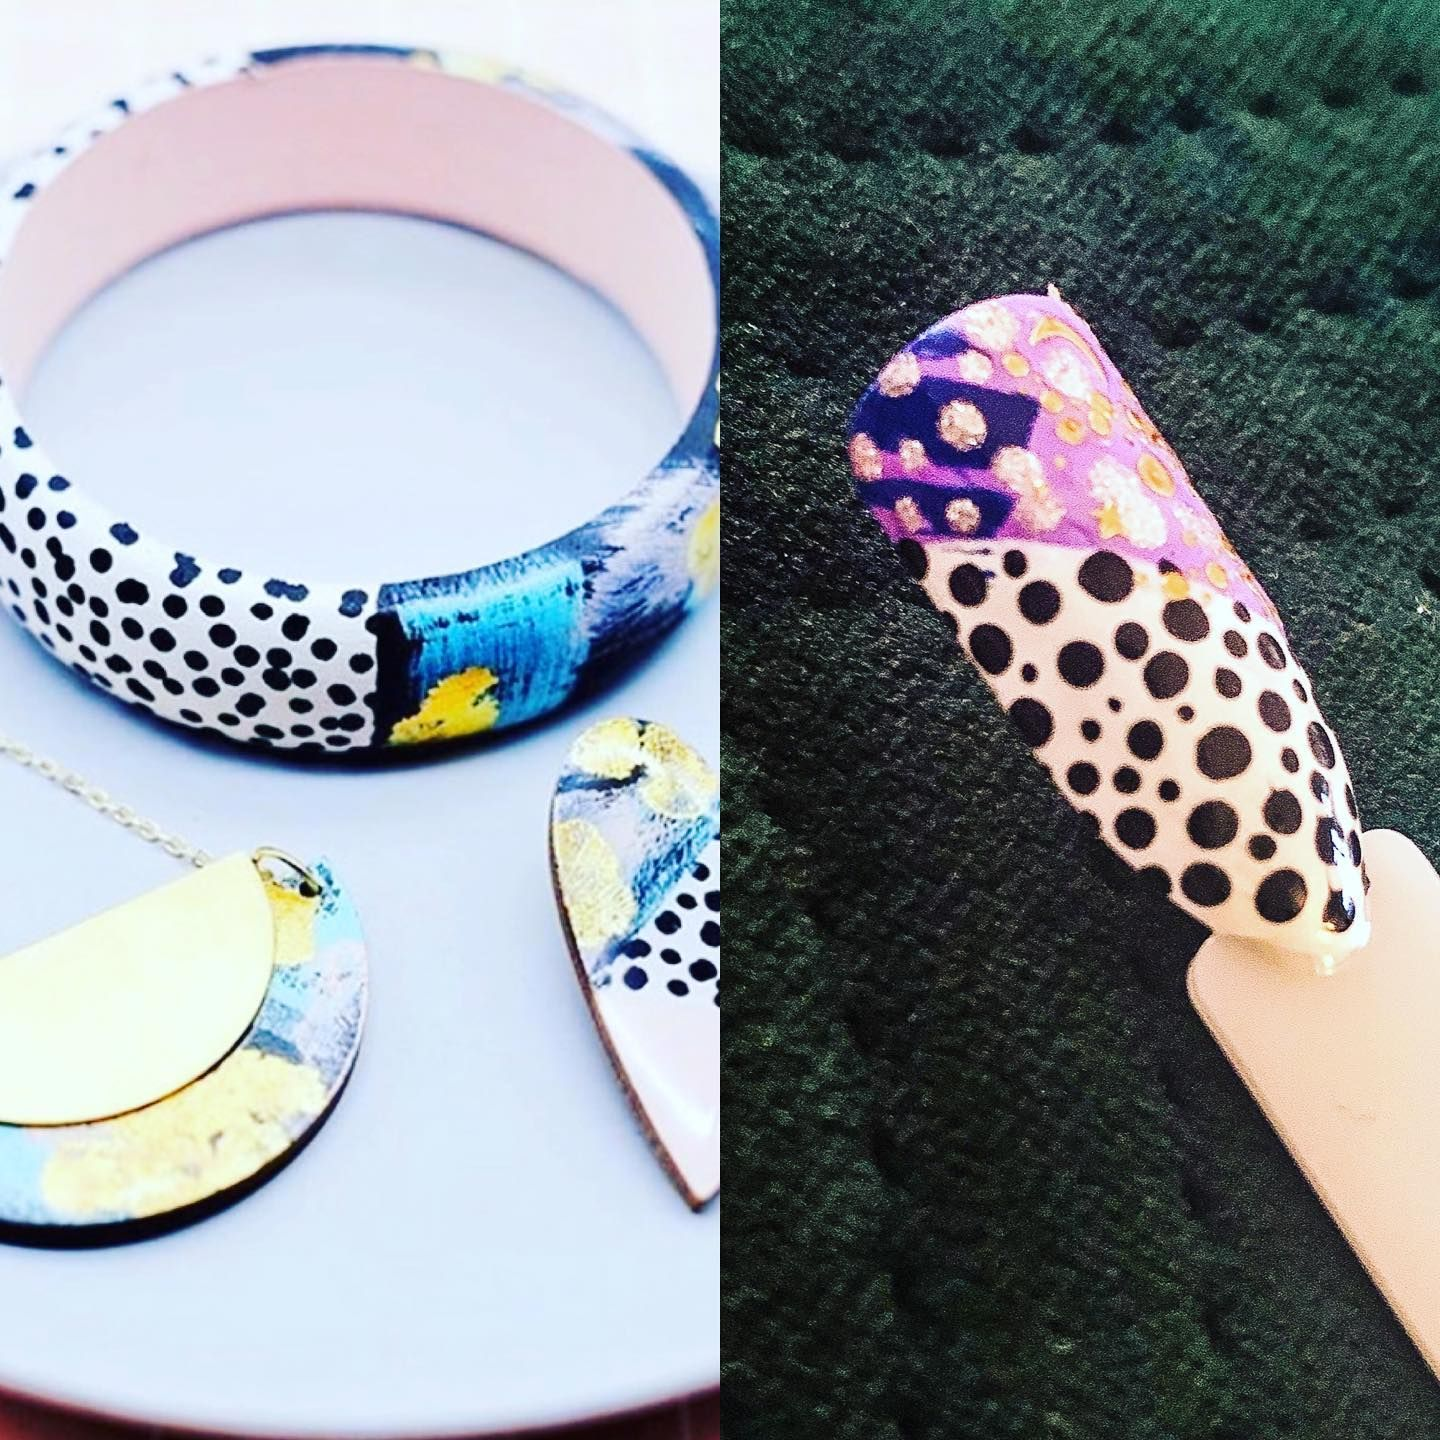 Its time for #pupitweekly week 2! I think Ive mastered dotting and I also had a play with @magpie_beauty nail art stickers too! Hopefully Ill get better and better the more I do my #coronachallenges  Colours used are; @peaccibrand Daisy Madam Fizz and @opinailsuk Keeping Suzi at Bay and Black Onyx  #scratchmagazine #thegelbottle #notd #nails #manicures #nailart #peacci #chinaglaze #nailtech #beauty #pupitweekly #polisheduppinterest #nailnovice #coronaviruschallenge #lockdownlearning #gelnails #t